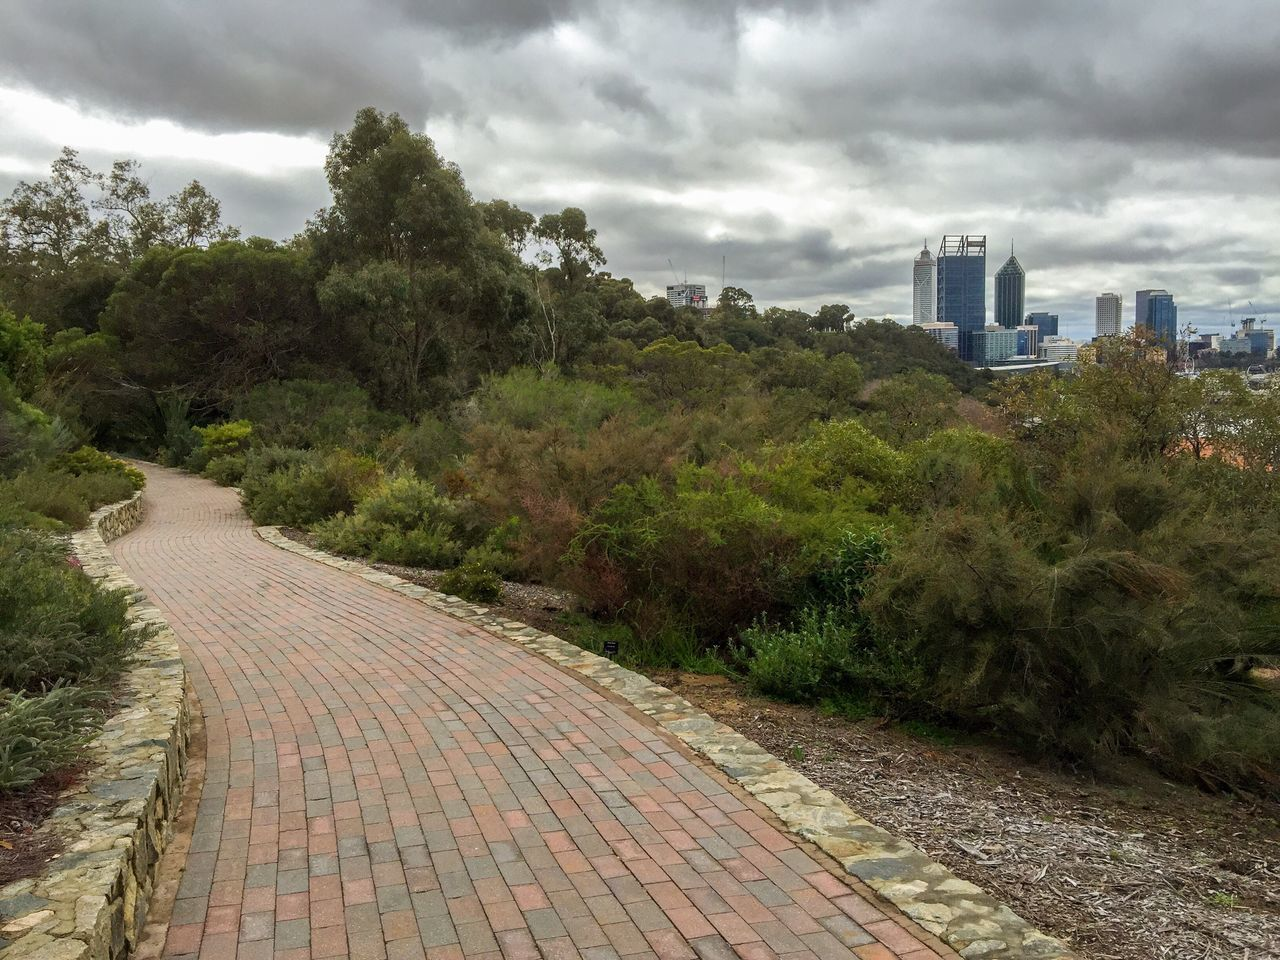 Perth Cityscape: King's Park Views Cityscape Architecture Urban Buildings Overcast Diminishing Perspective Landscape Lush Foliage Trees Plants Outdoors Nature Perth Australia Botanical Gardens King's Park Western Australia Sidewalk Path Stone Brick Lush Bush Cloudy Green